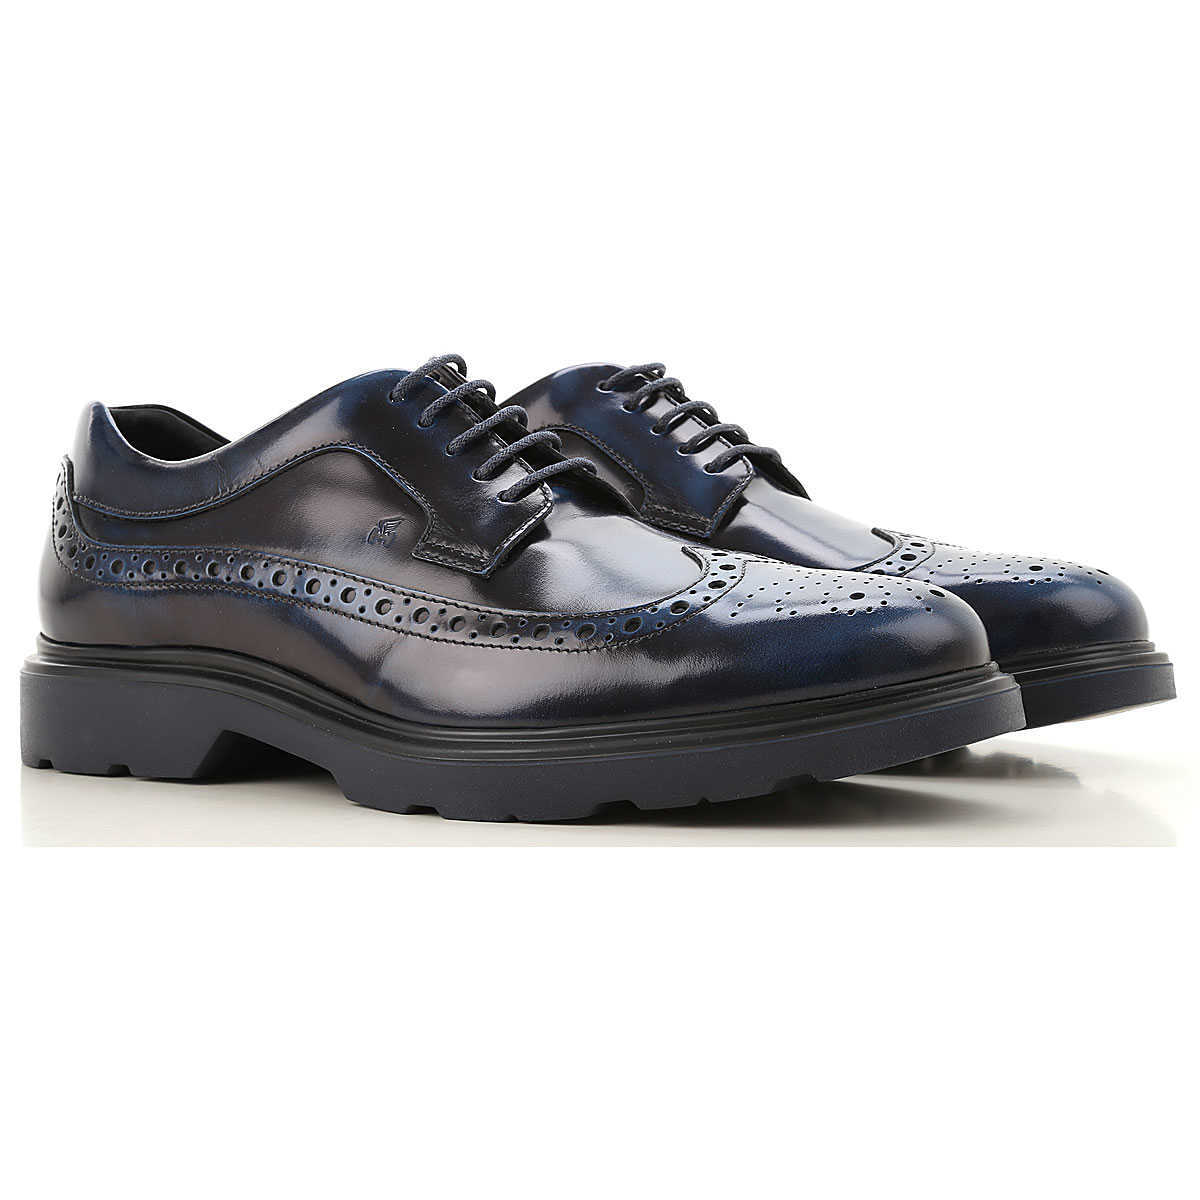 Hogan Lace Up Shoes for Men Oxfords 10 5 5.5 6 6.5 7 7.5 8 8.5 9 9.5 Derbies and Brogues UK - GOOFASH